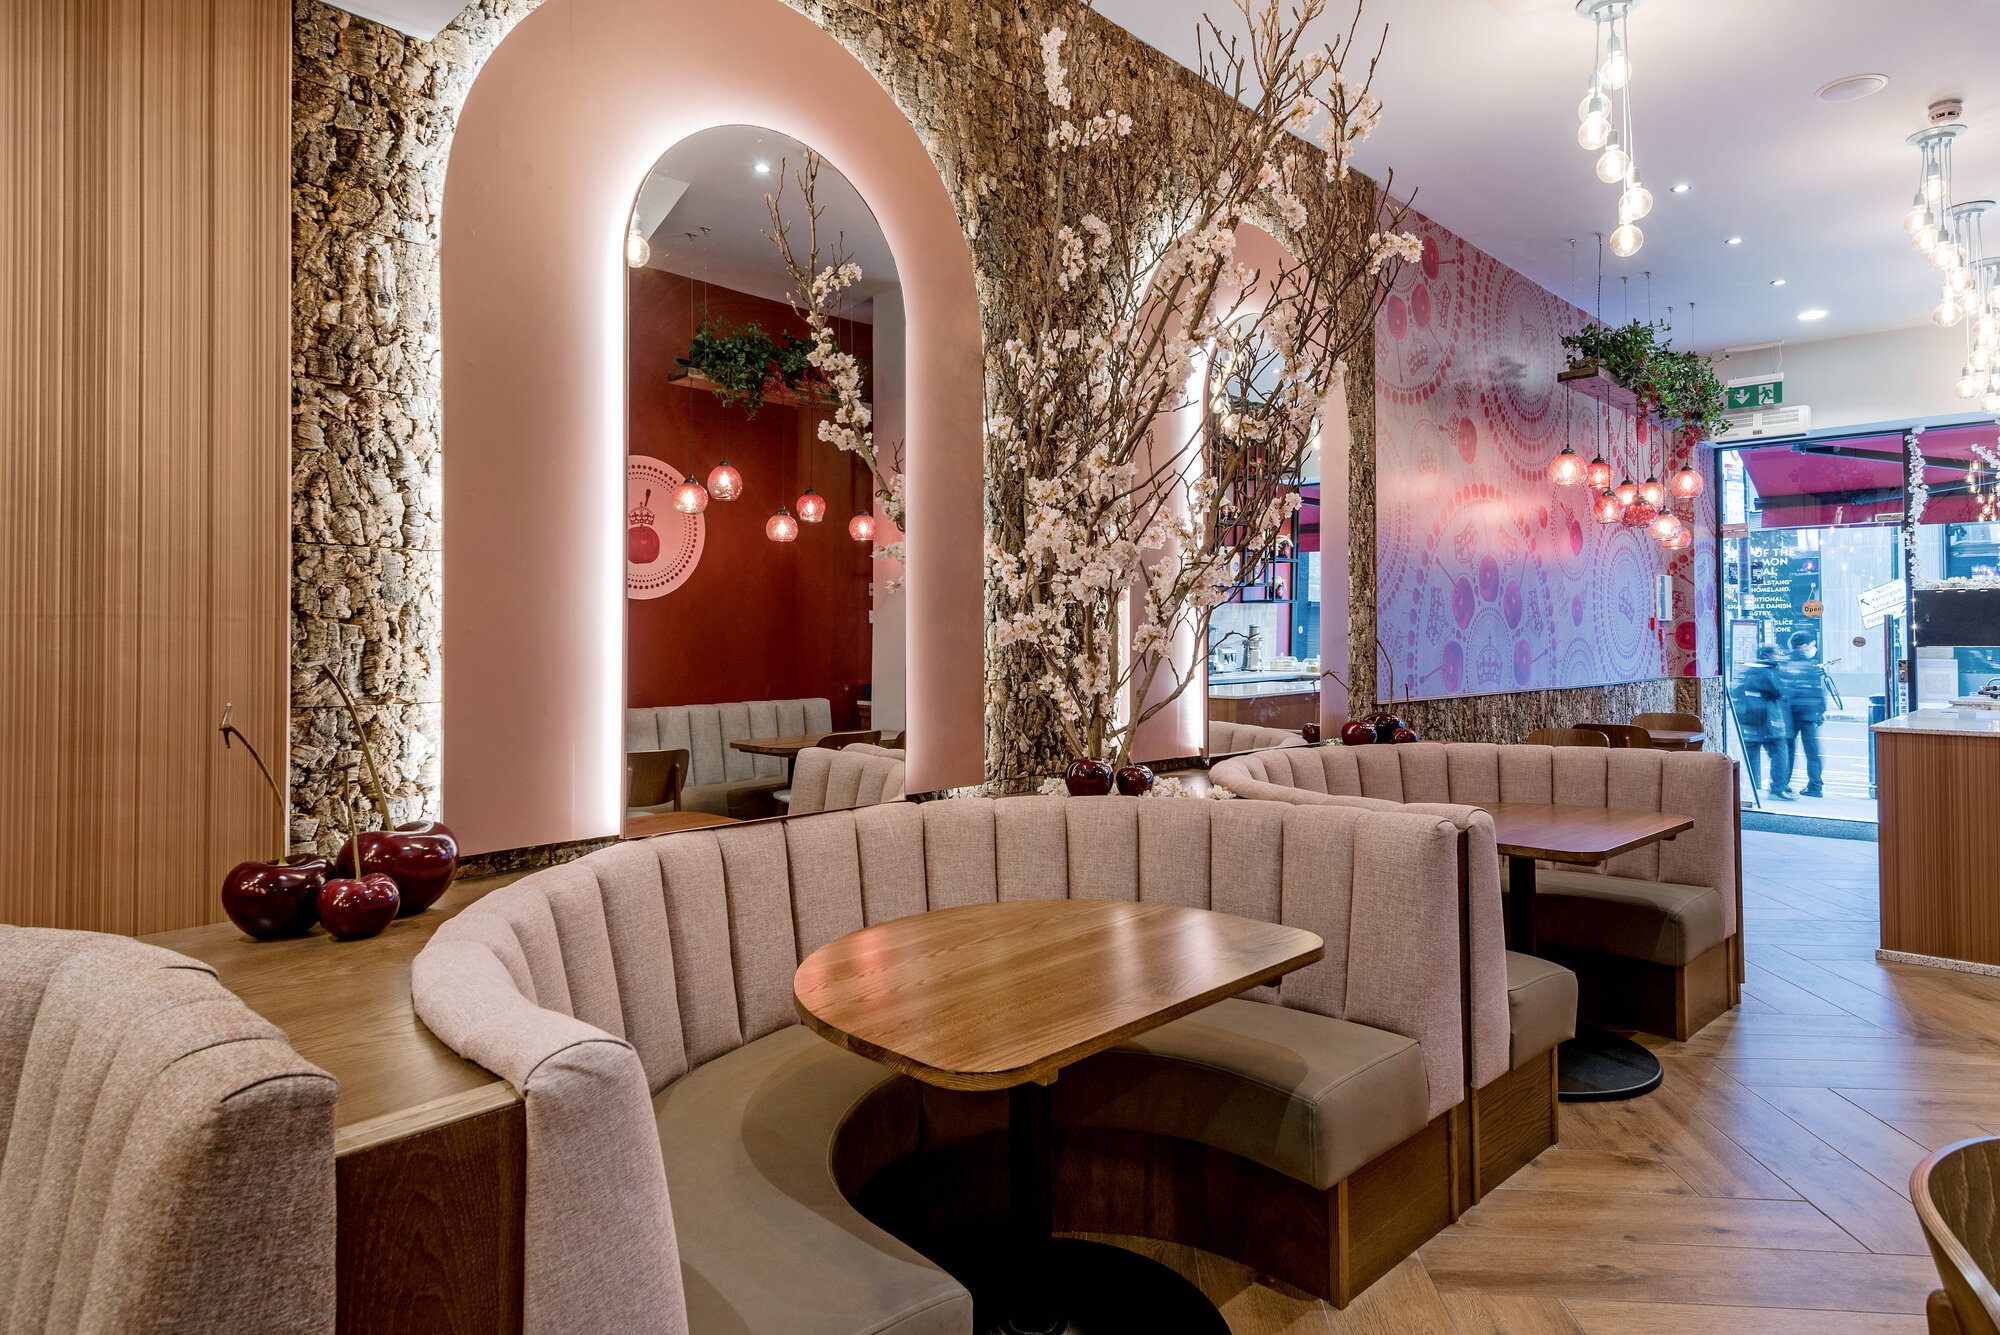 Vtec's Cork Wall Tiles in Restaurant Refurb